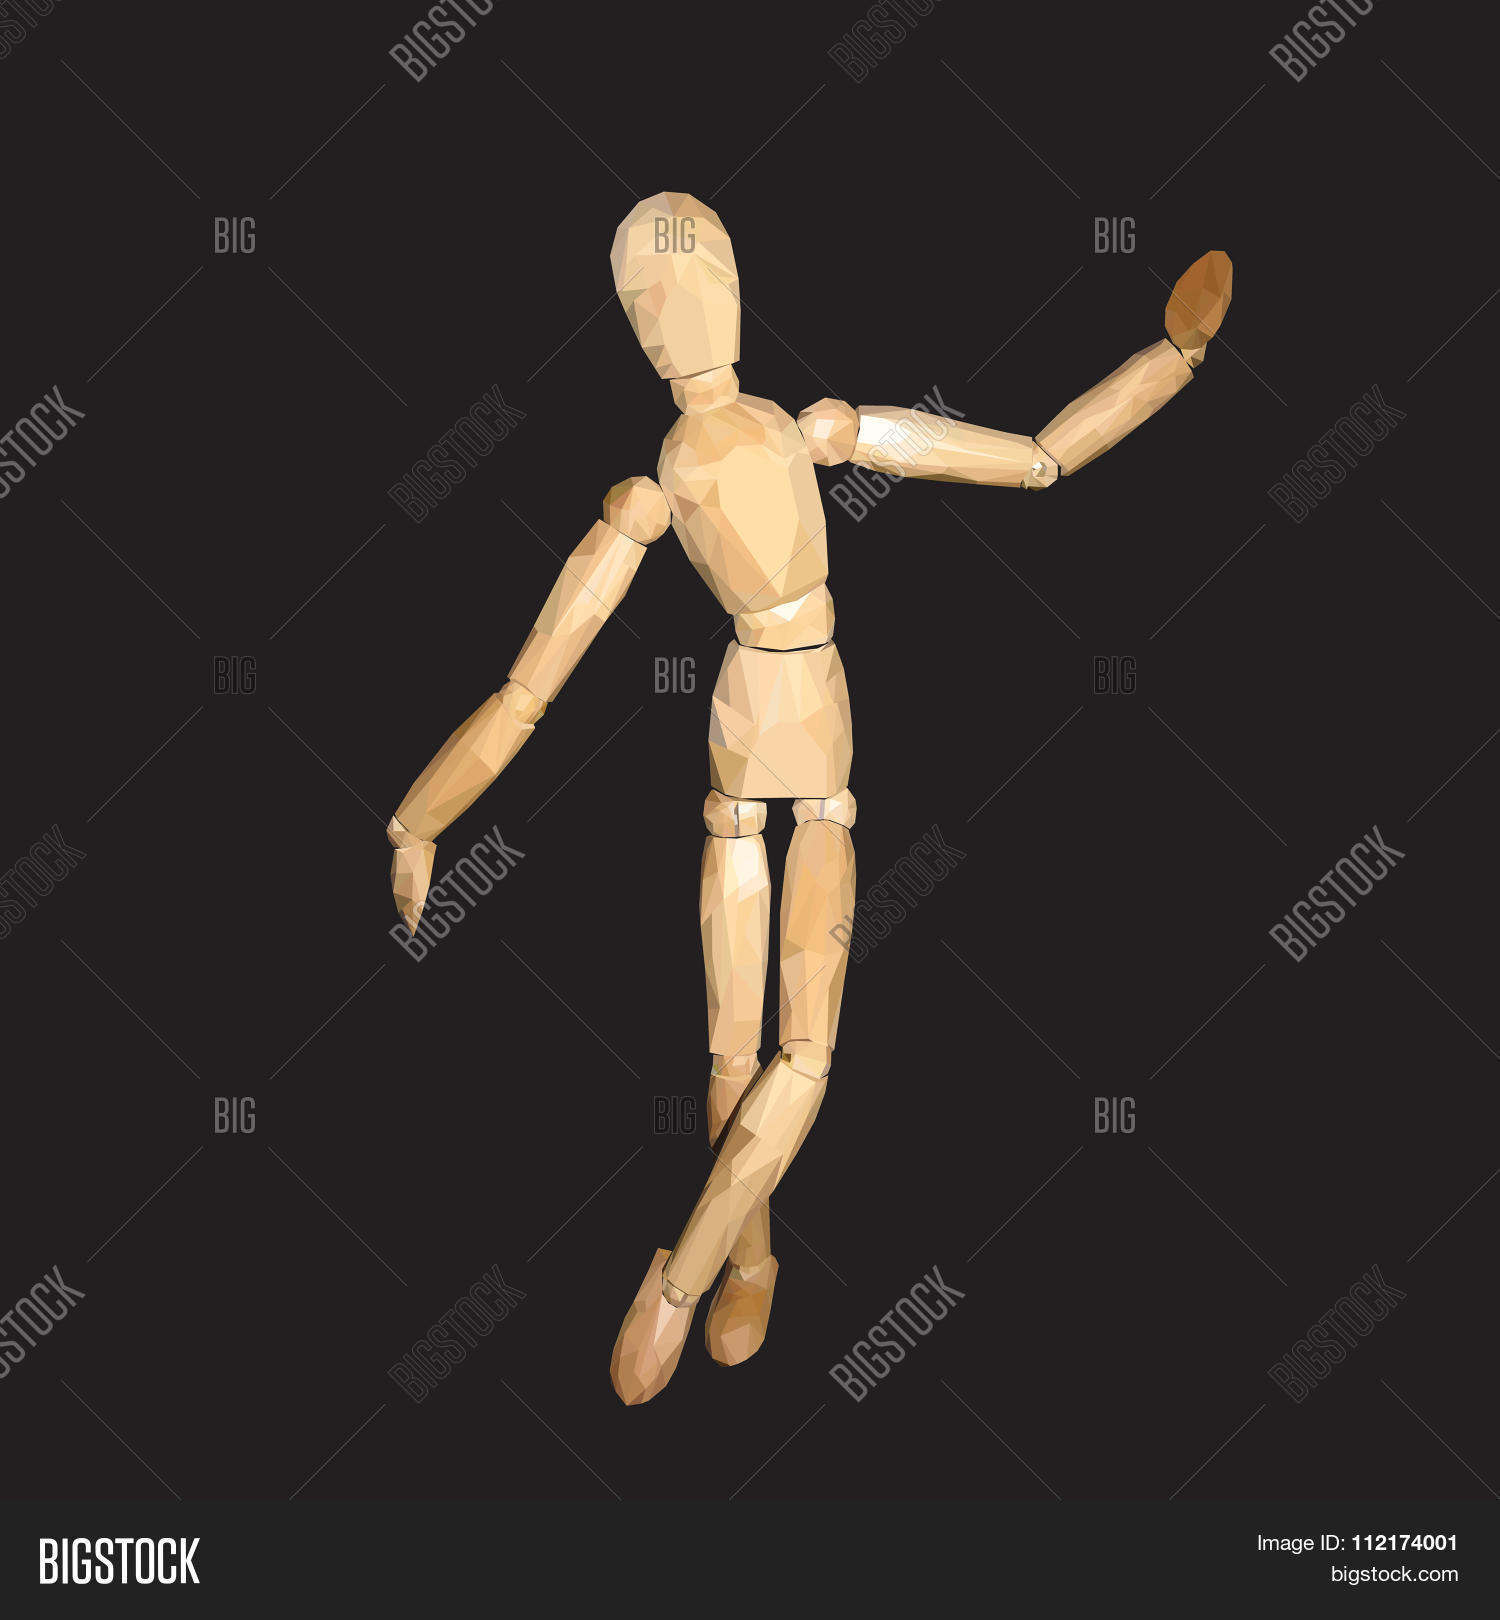 mannequin wood doll image photo free trial bigstock